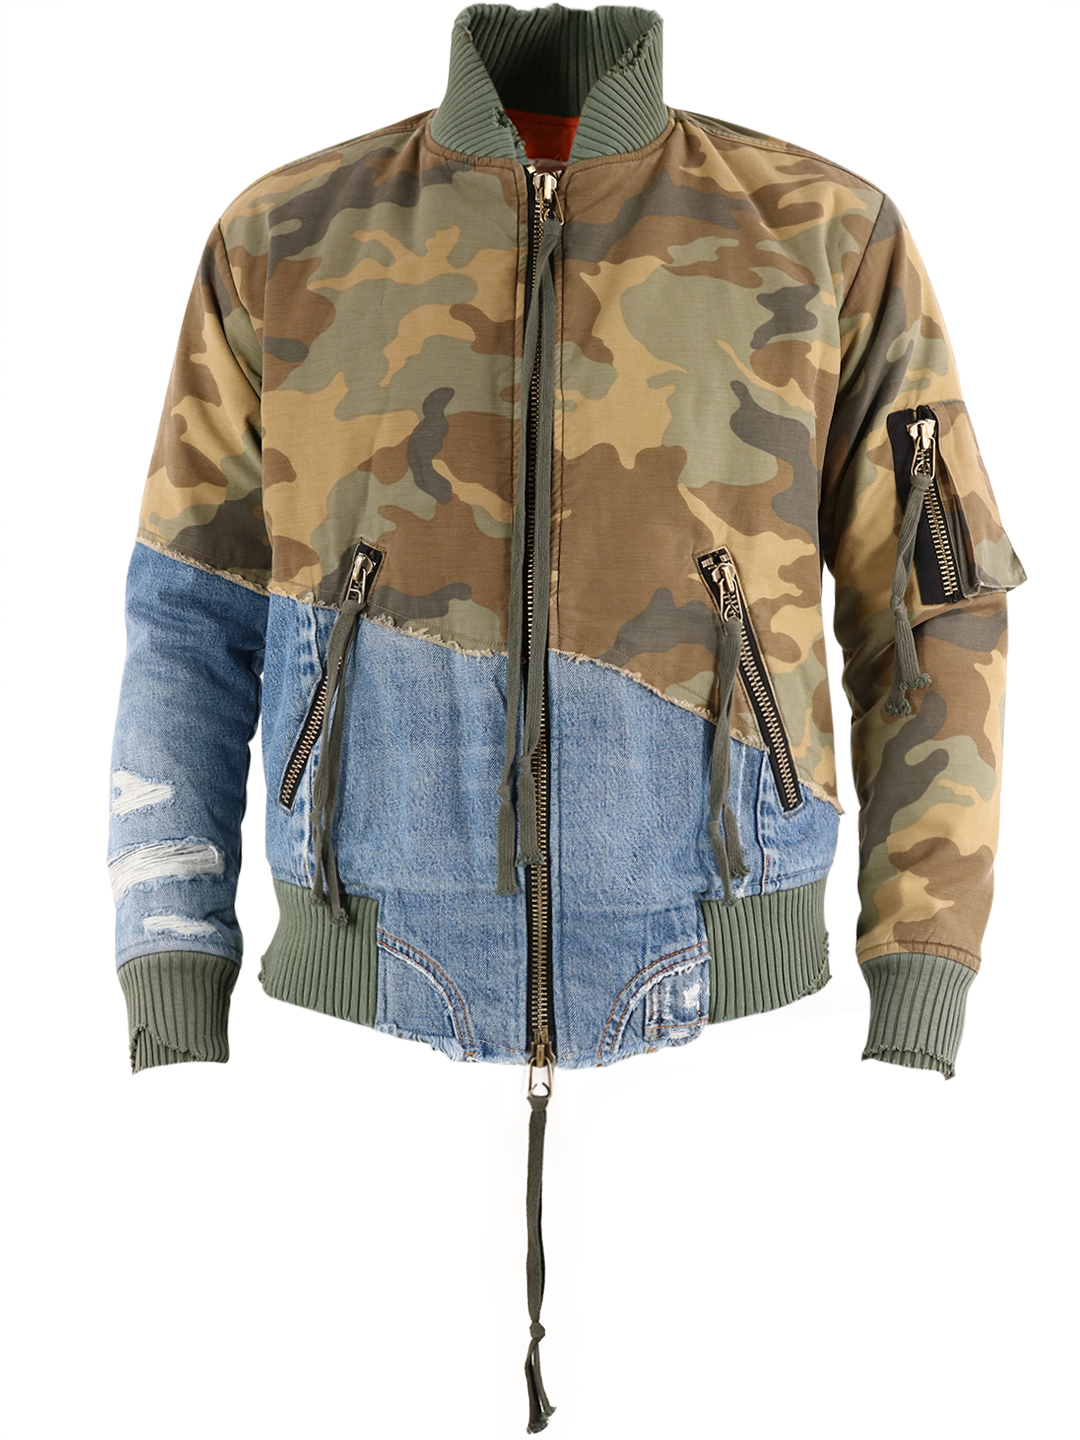 Greg Lauren CAMOUFLAGE AND DENIM JACKET